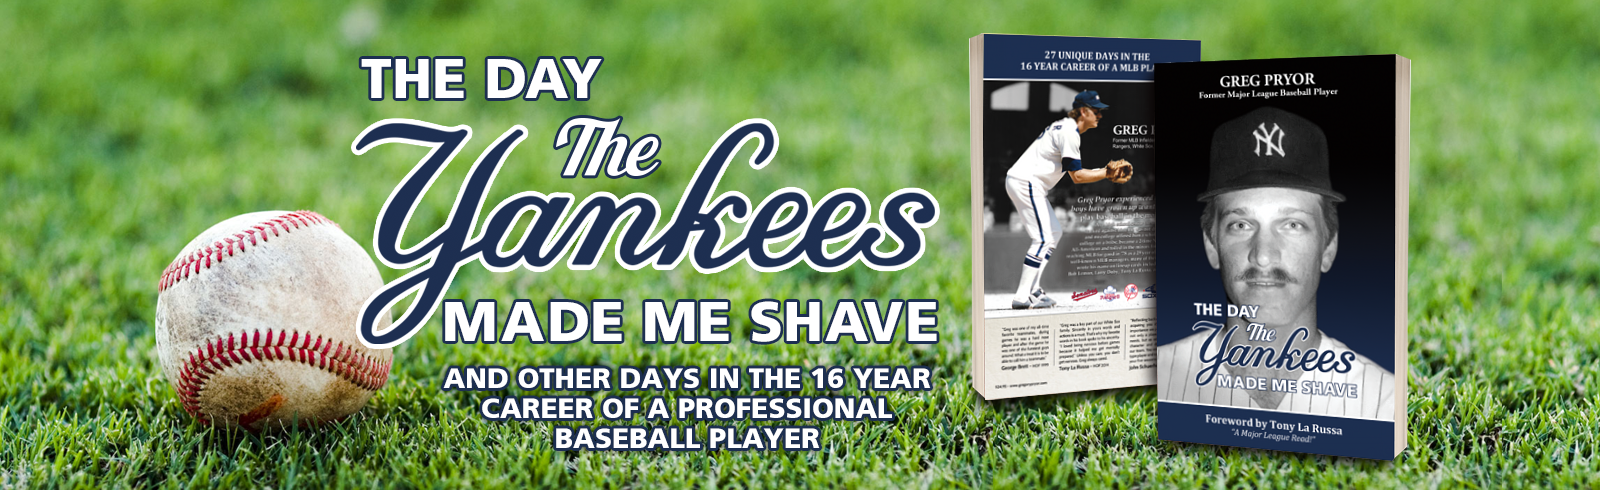 The Day The Yankees Made Me Shave Book by Greg Pryor